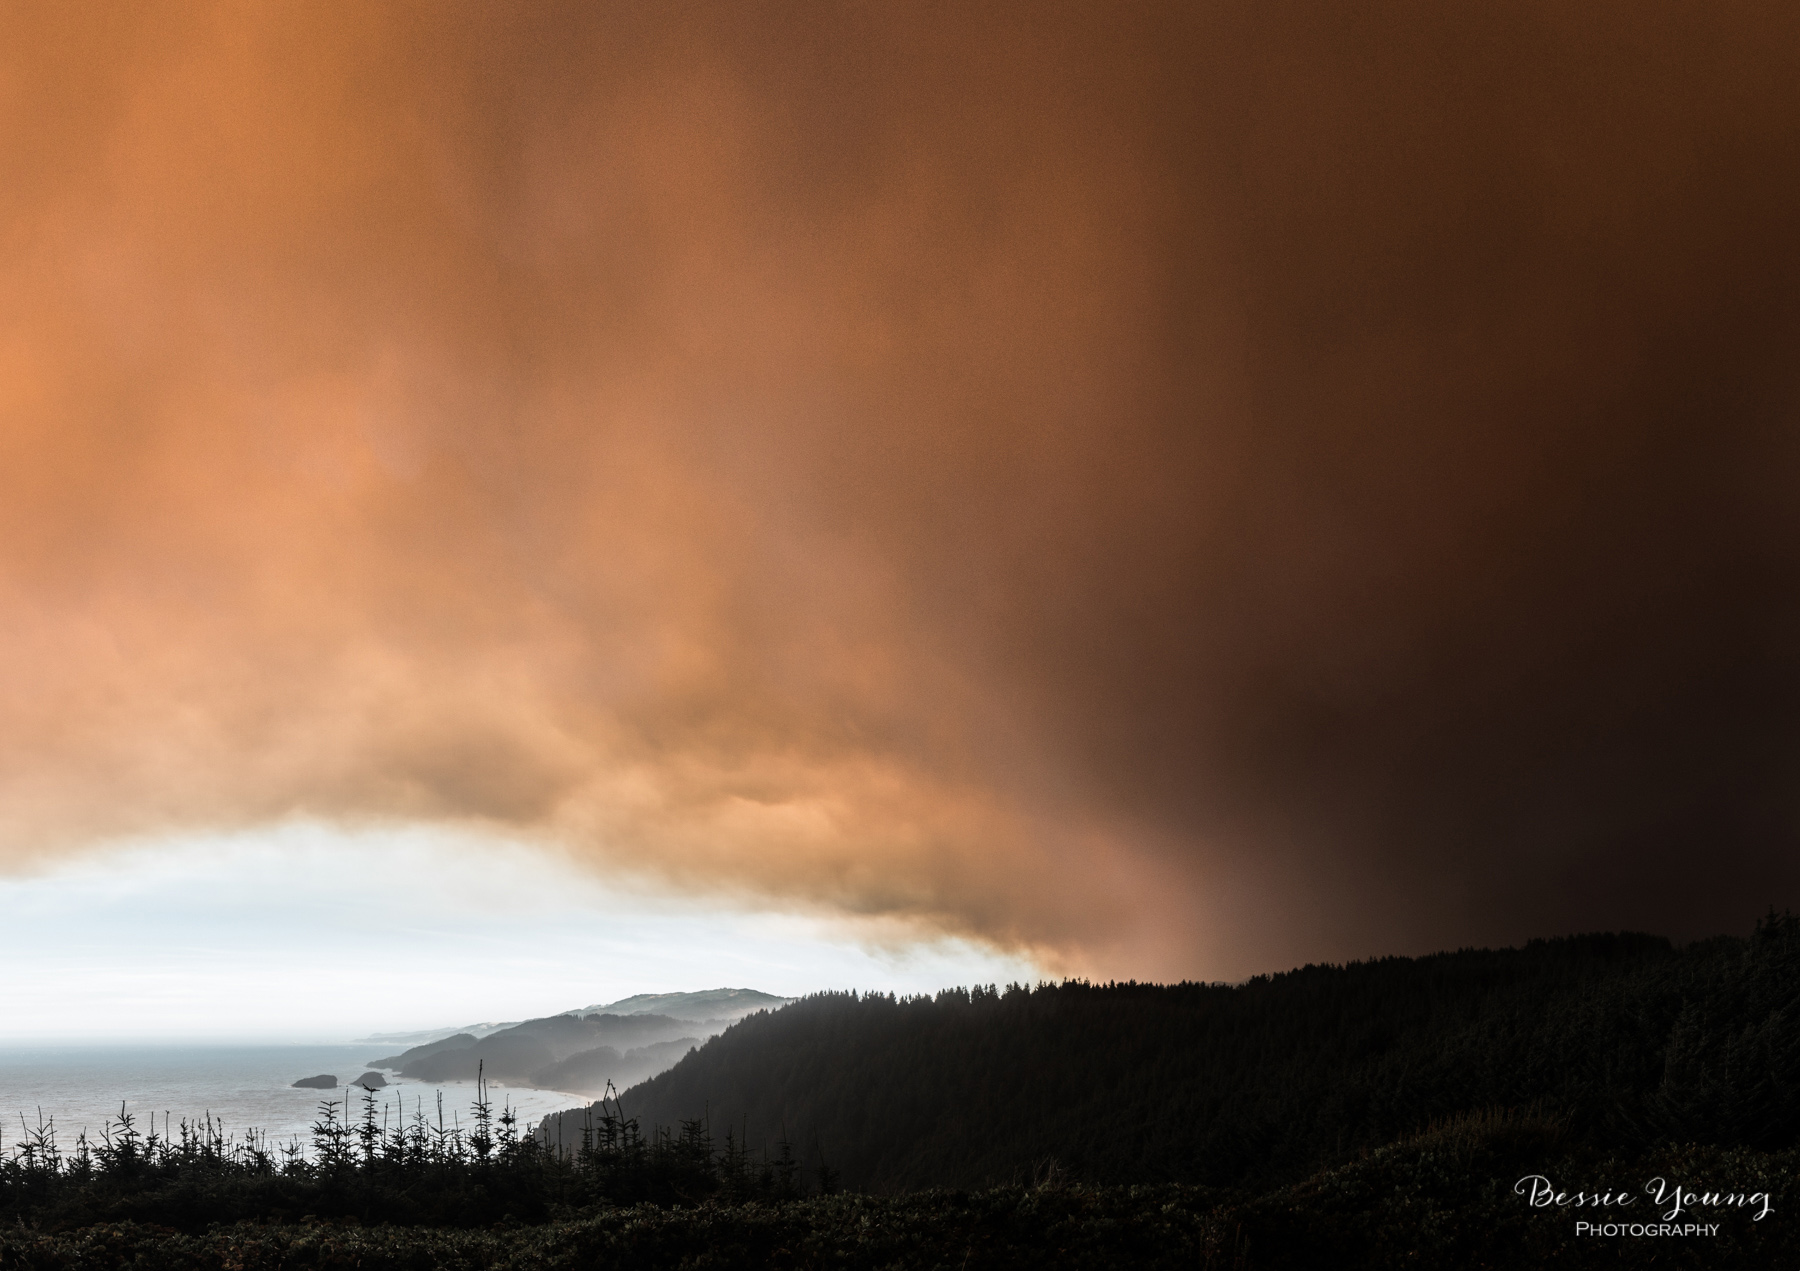 Chetco Bar Fire Brookings Oregon 2017 - Bessie Young Photography-29.jpg